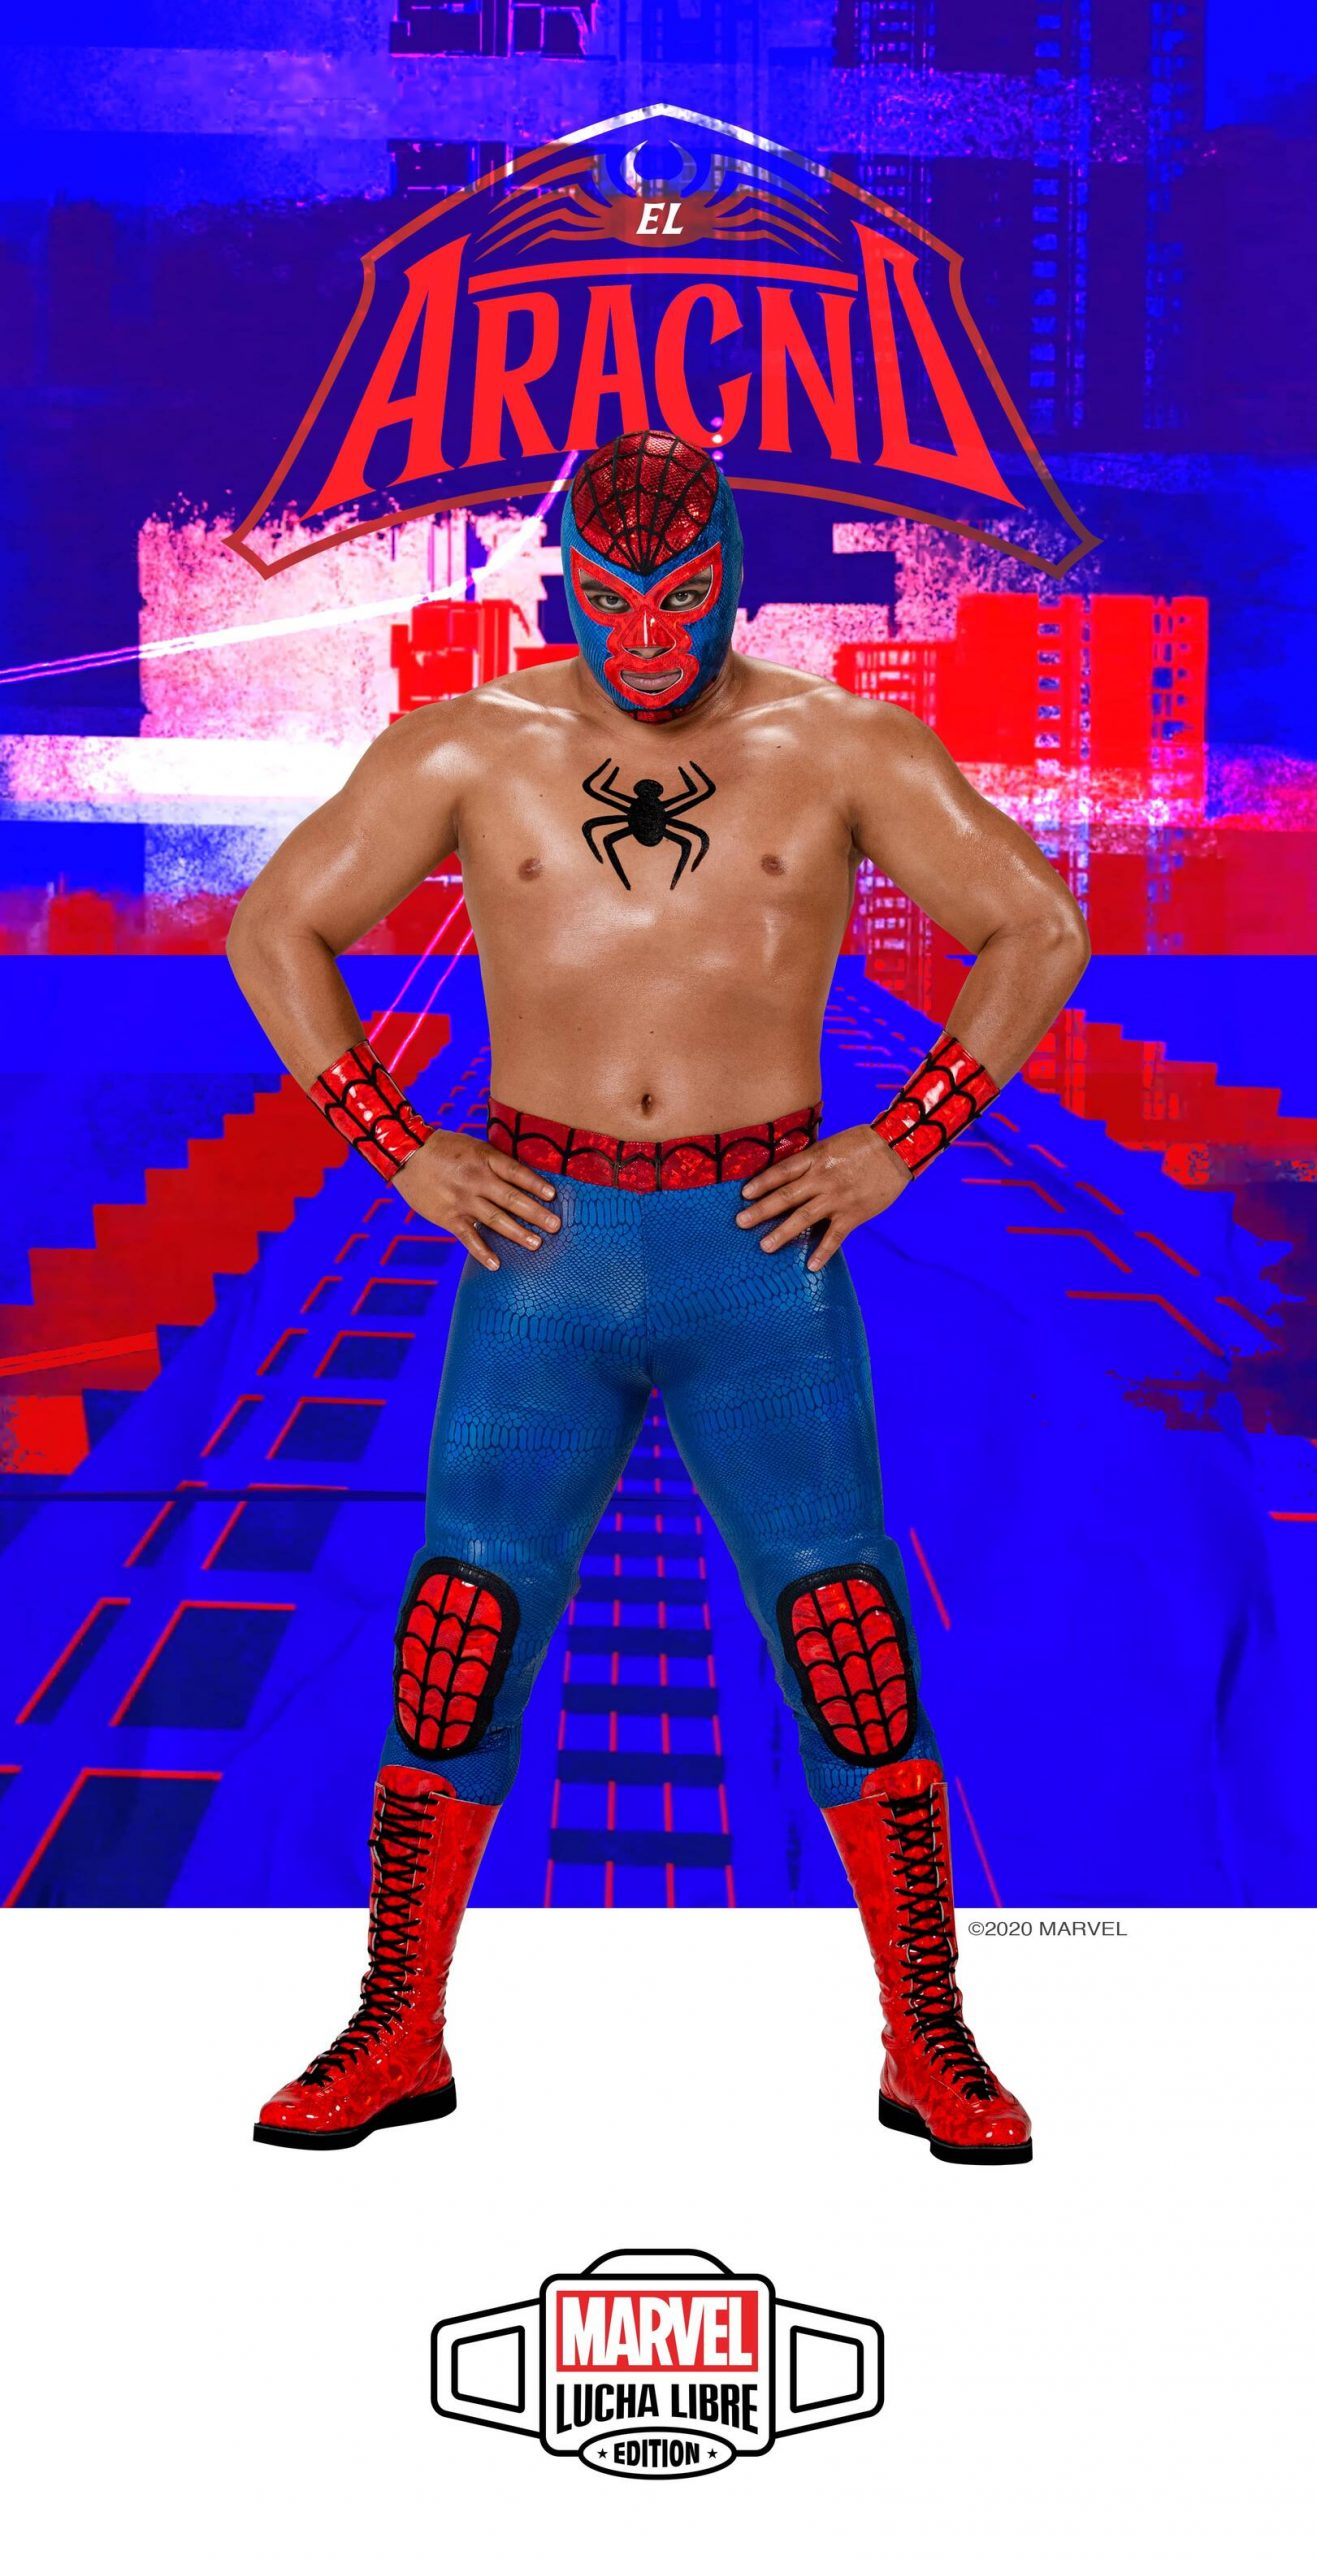 Lucha Libre Wrestler El Aracno in his costume